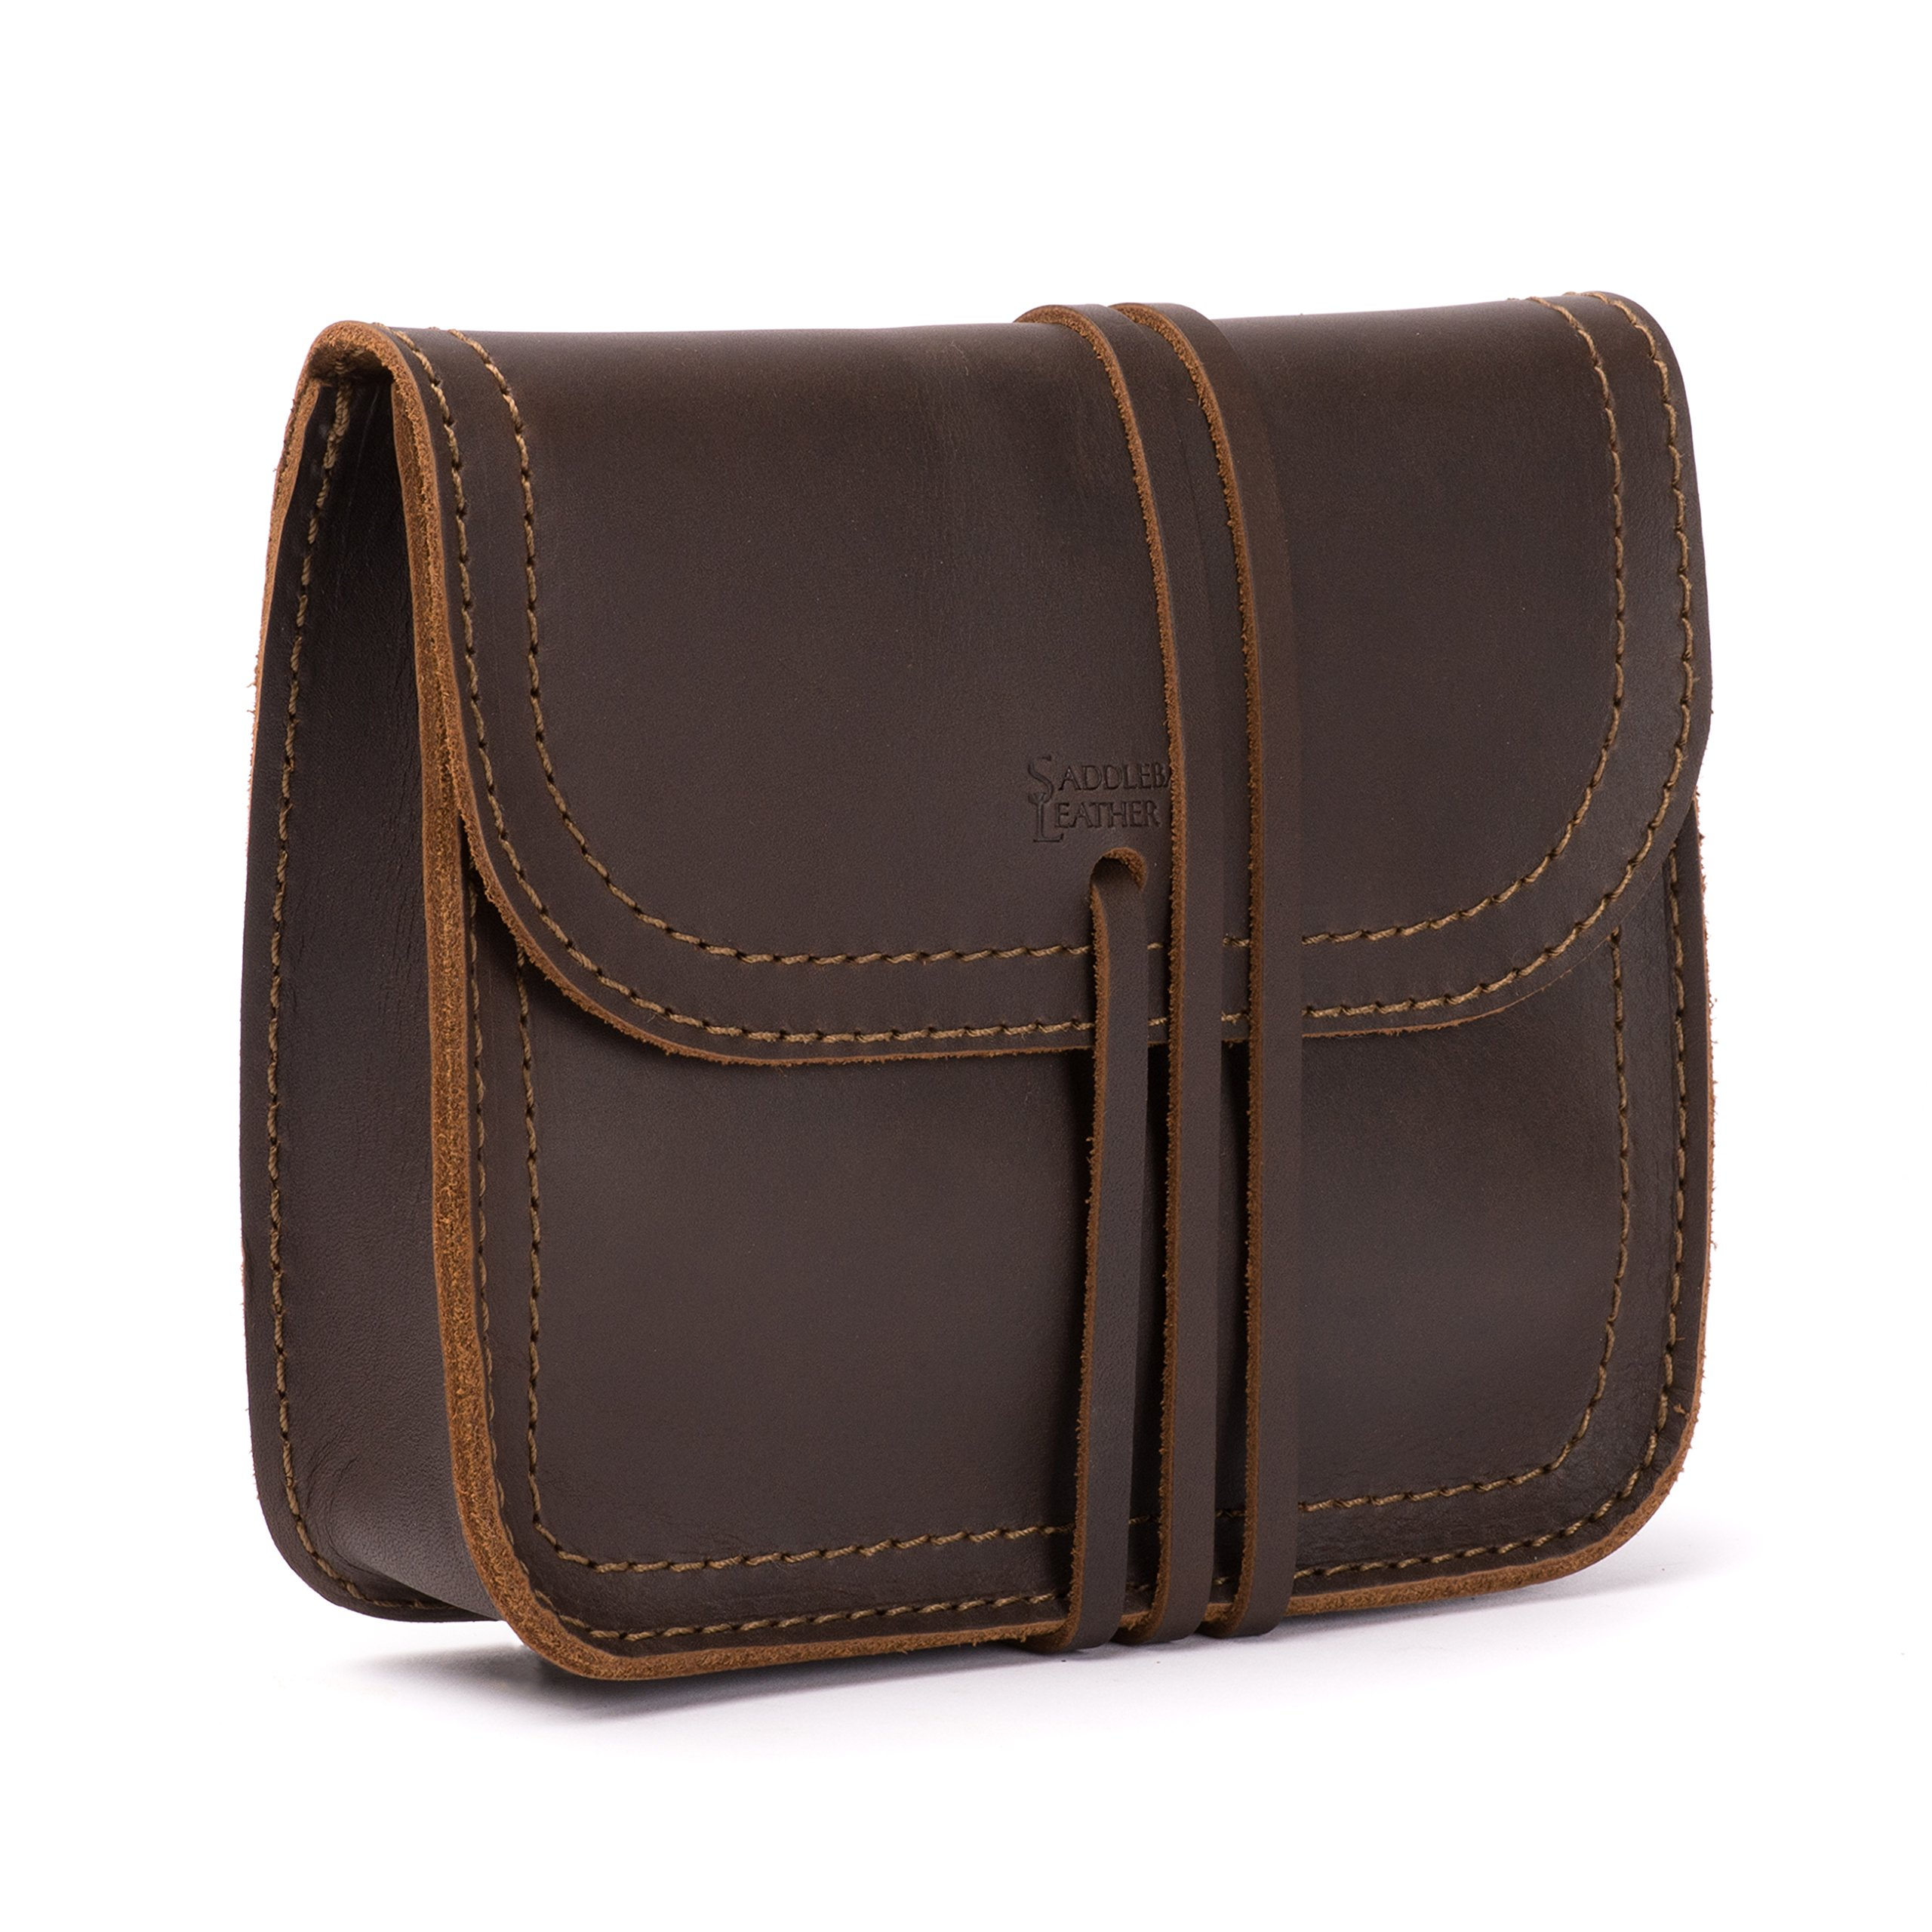 Saddleback Leather Cable Bag - 100% Full Grain Leather Electronic Organizer Pouch with 100 Year Warranty